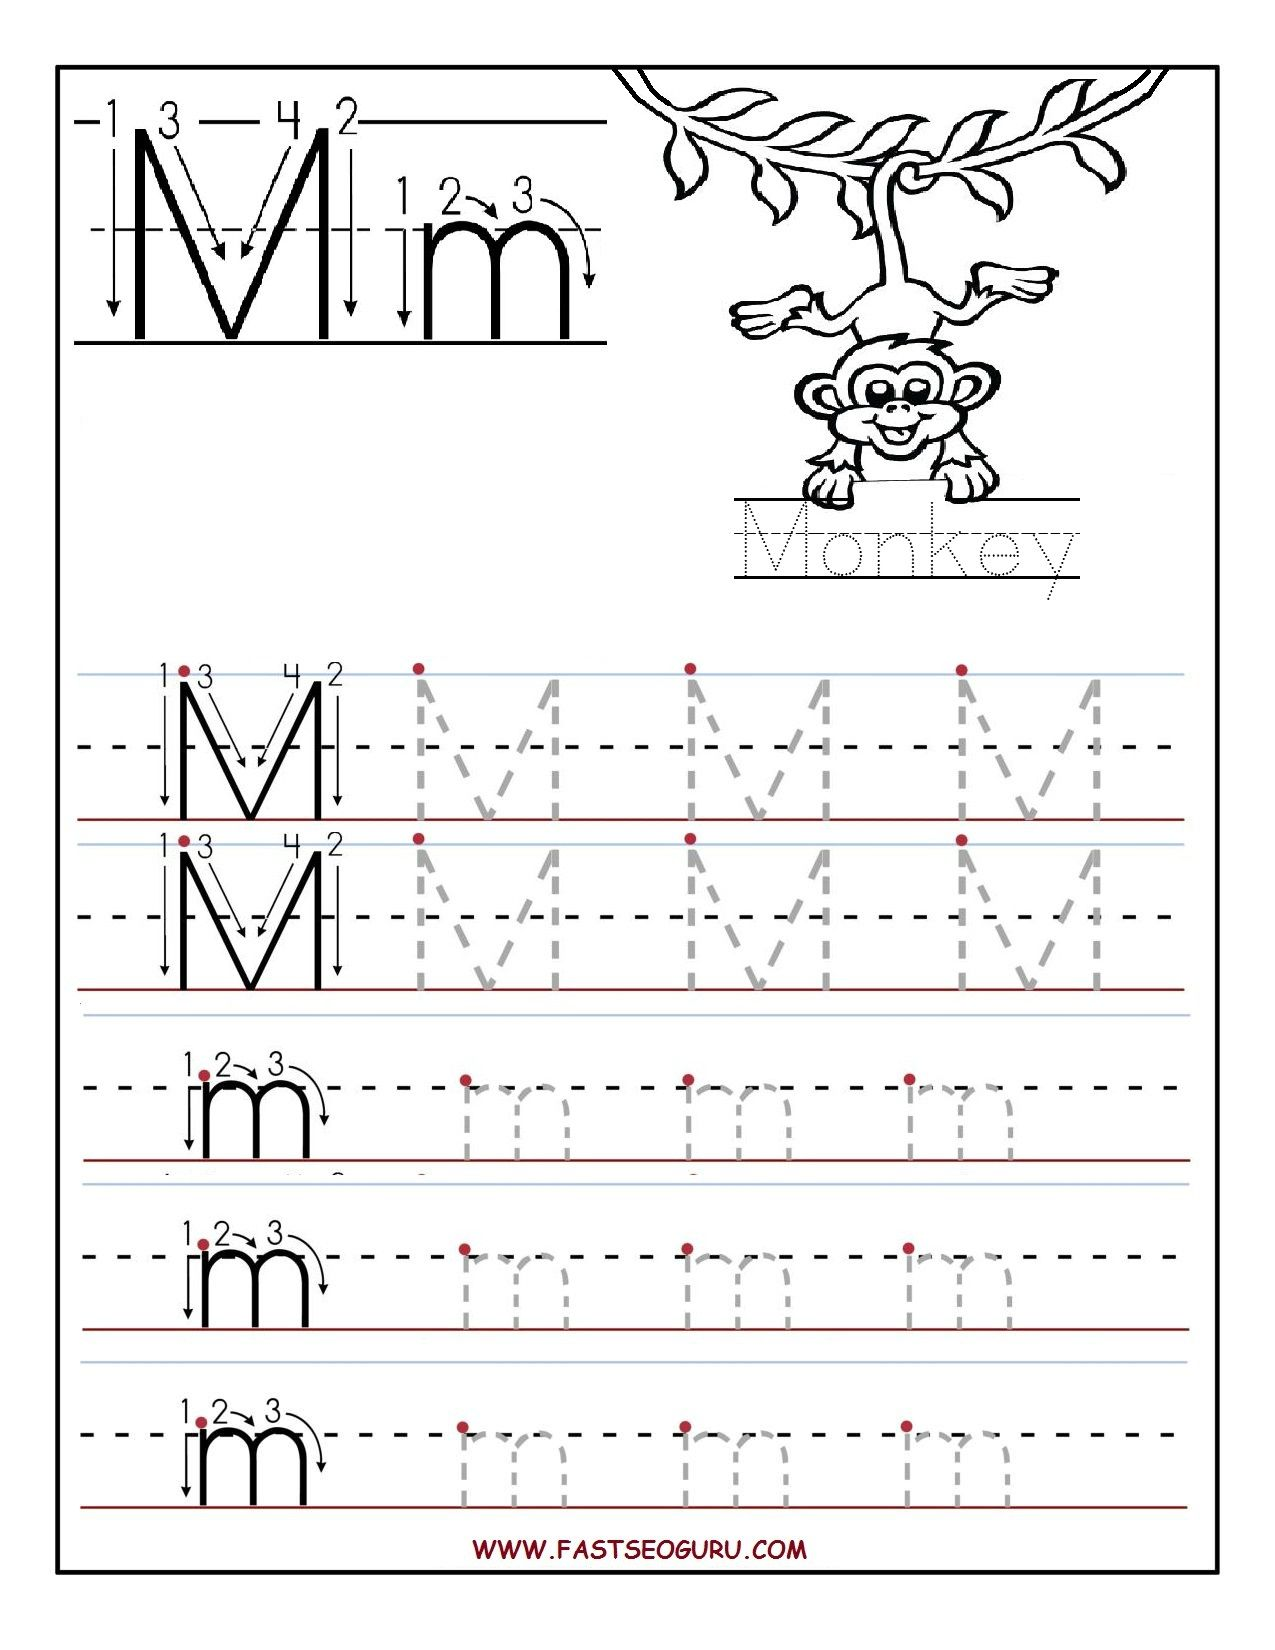 Preschool Letter E Tracing Worksheet Free